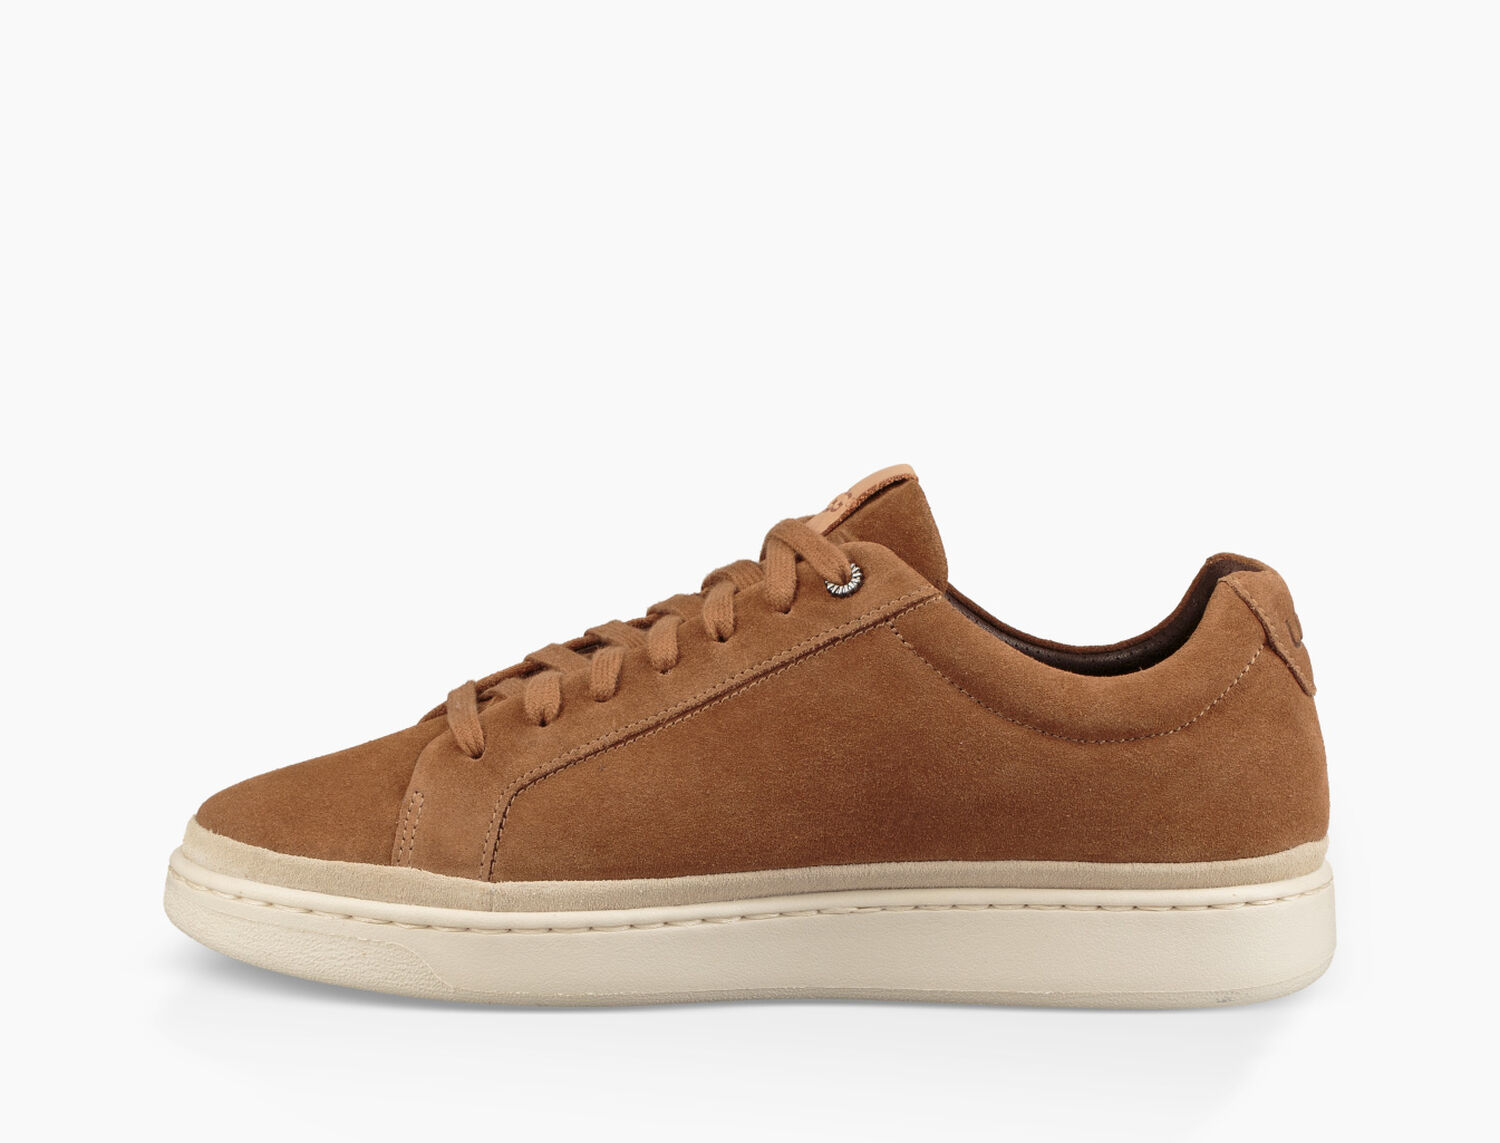 d3262368704 Men's Share this product Cali Sneaker Low